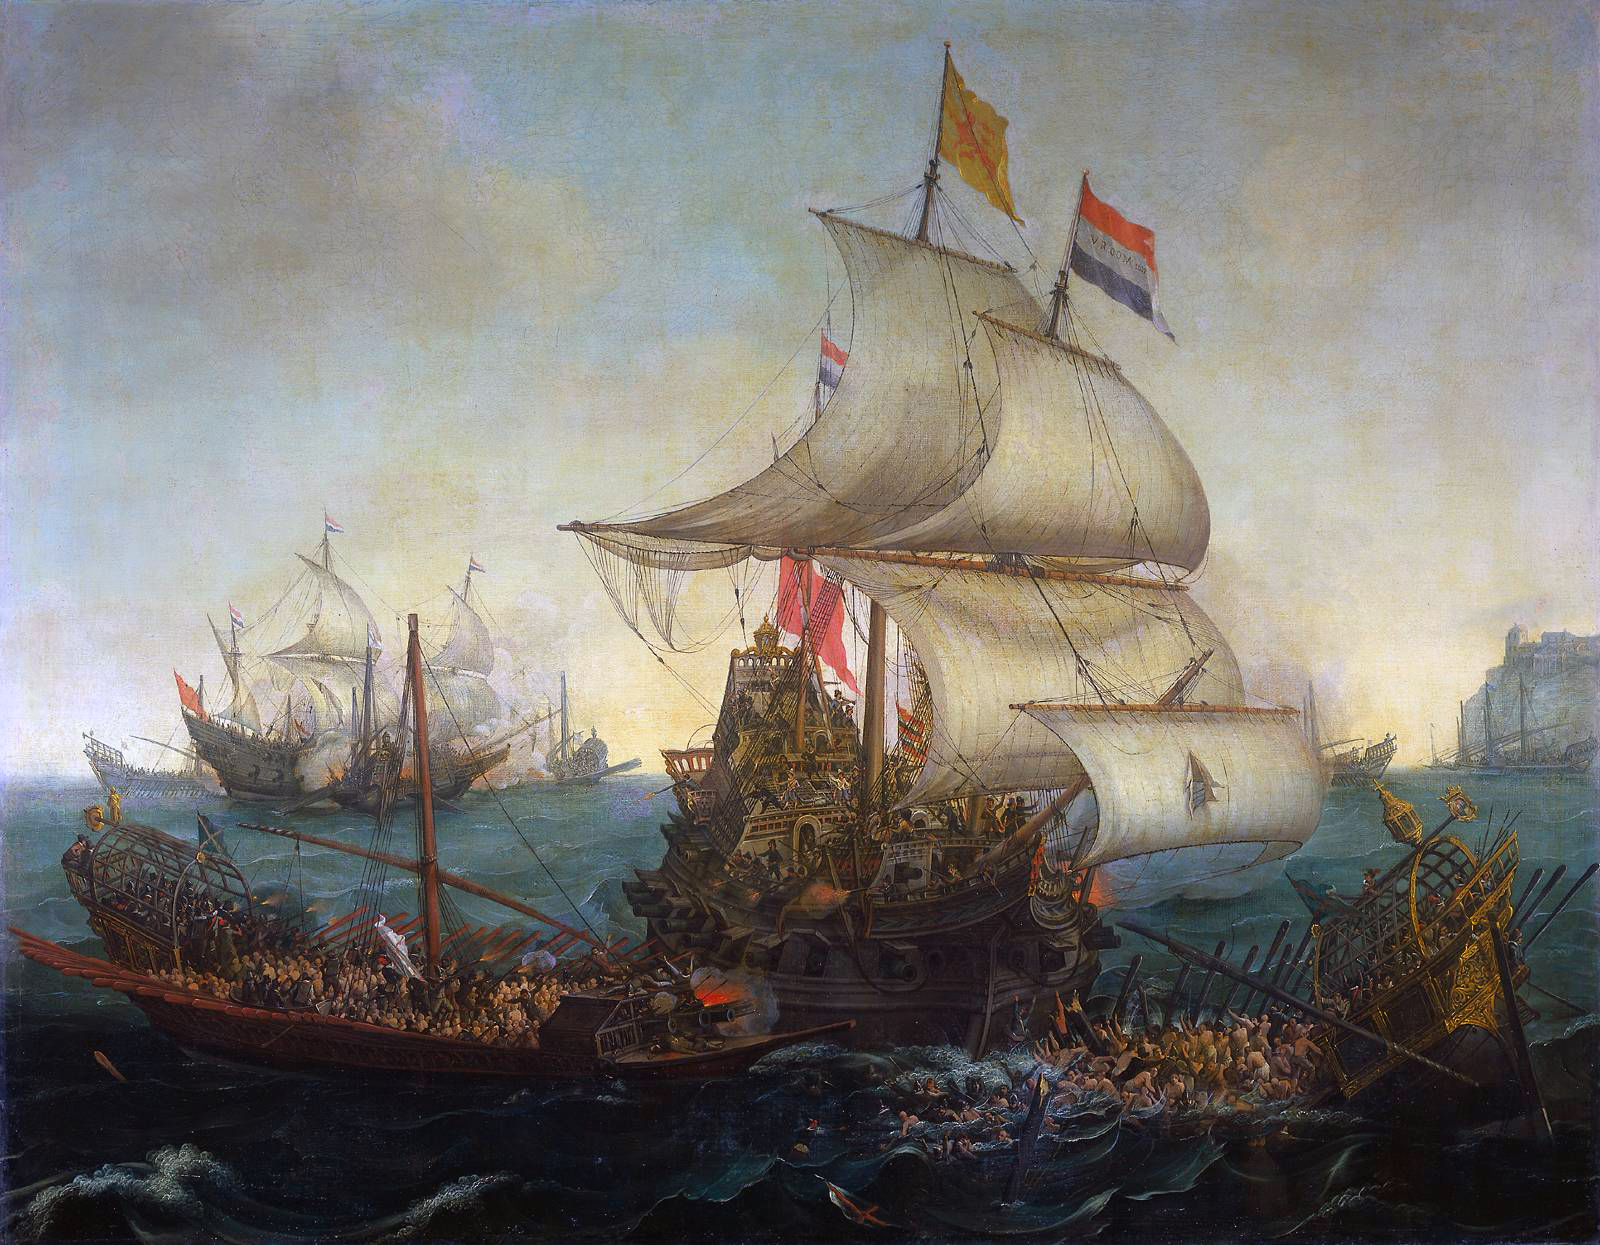 Vroom_Hendrick_Cornelisz_Dutch_Ships_Ramming_Spanish_Galleys_off_the_Flemish_Coast_in_October_1602.jpg